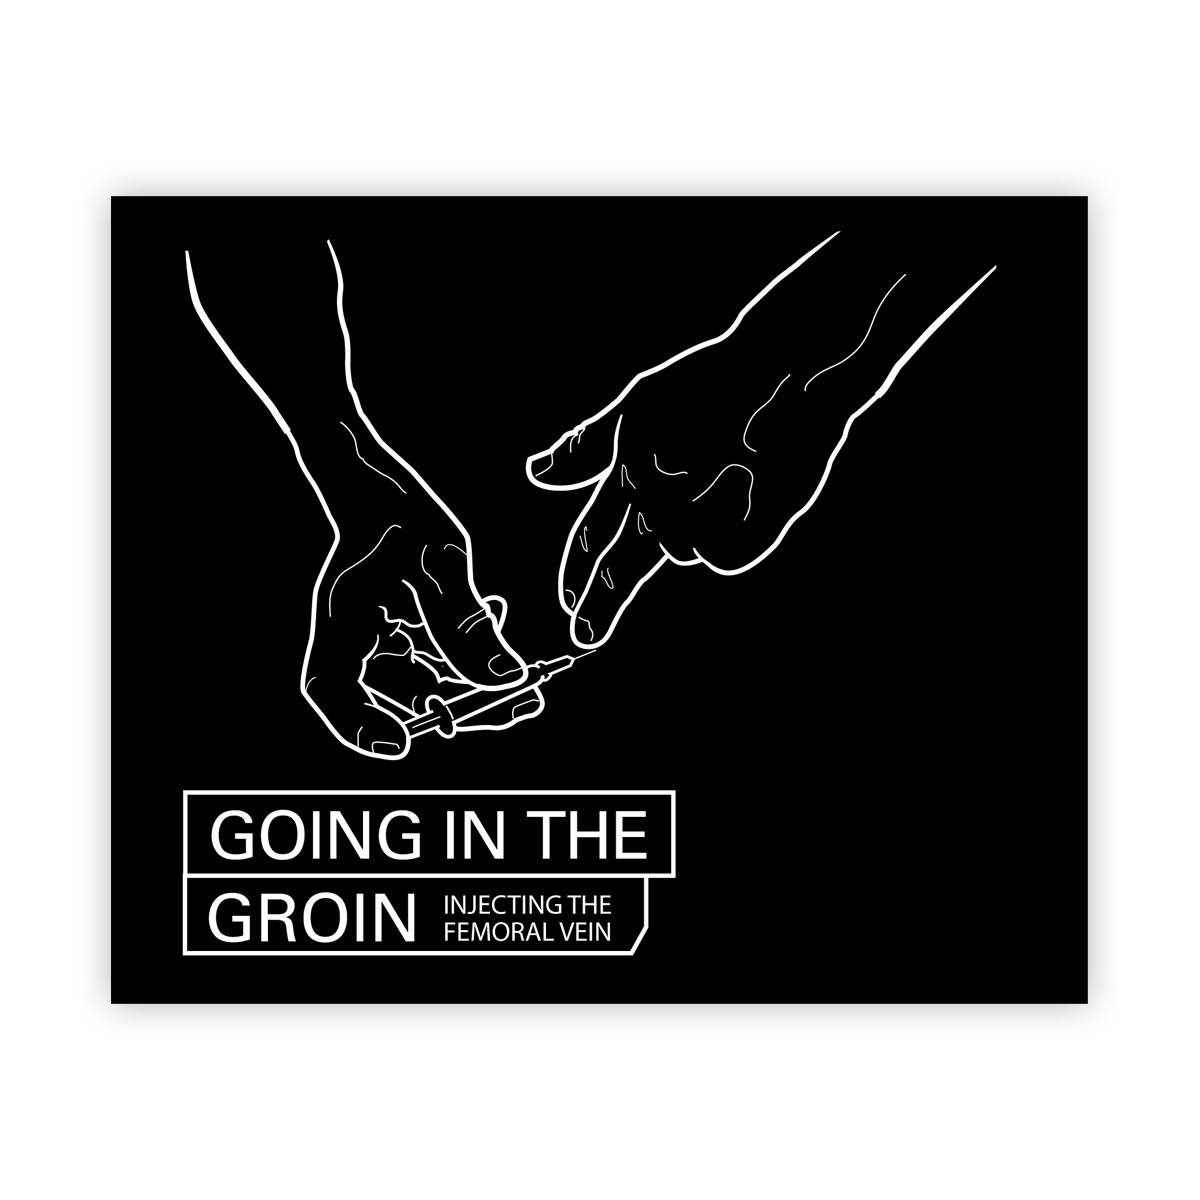 Going in the groin (new edition coming soon)